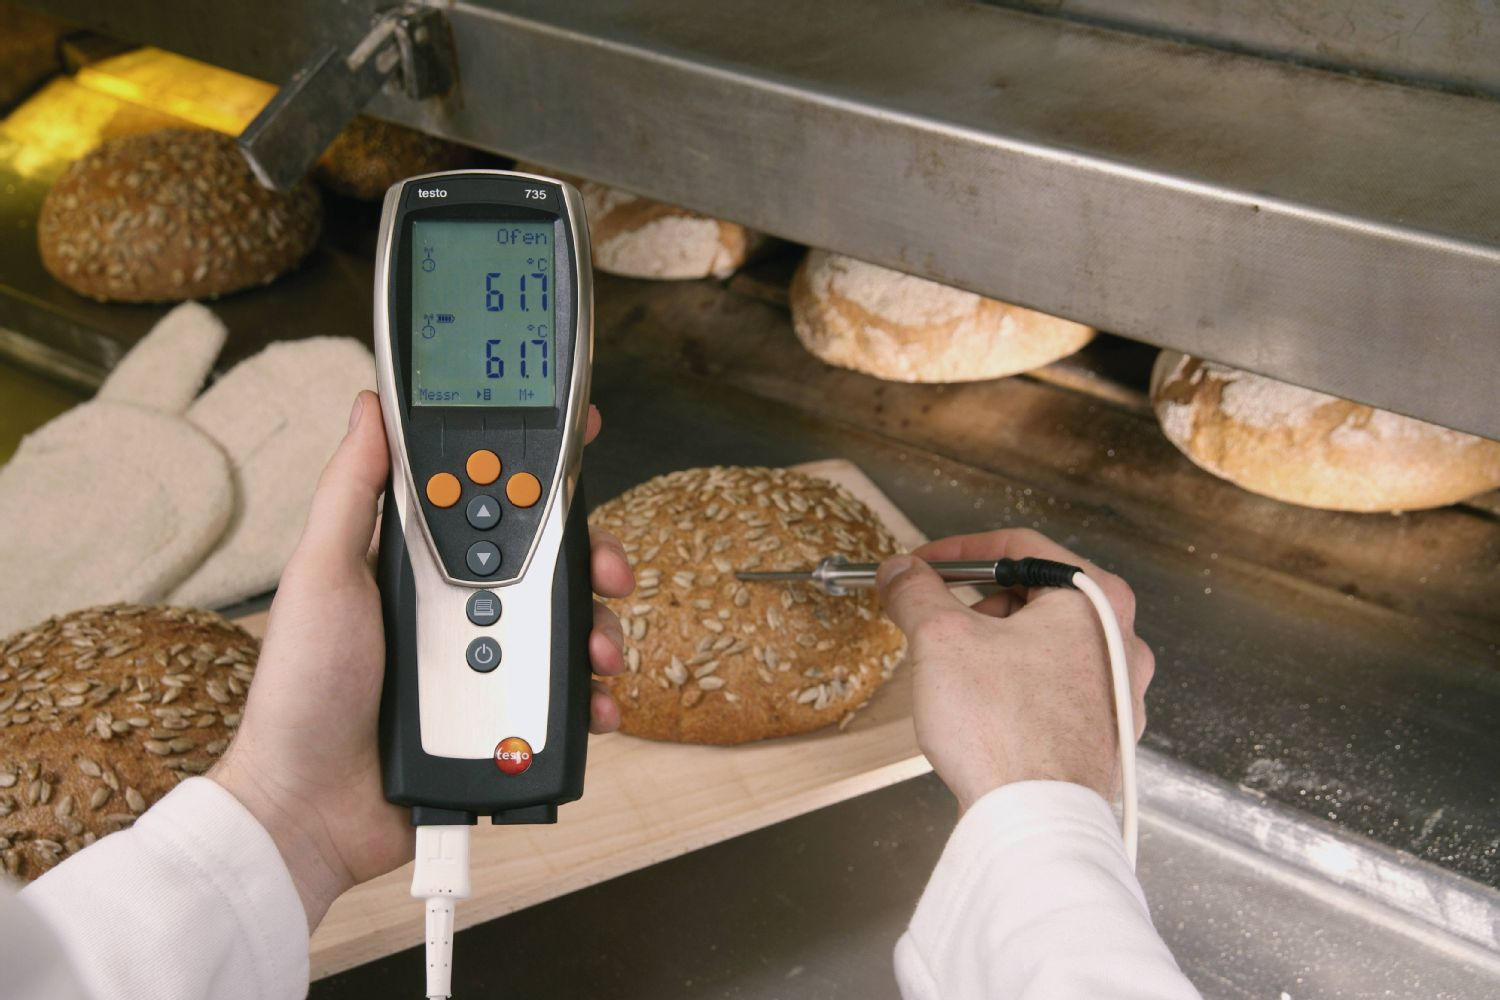 testo-735-application-temperature-001039.jpg